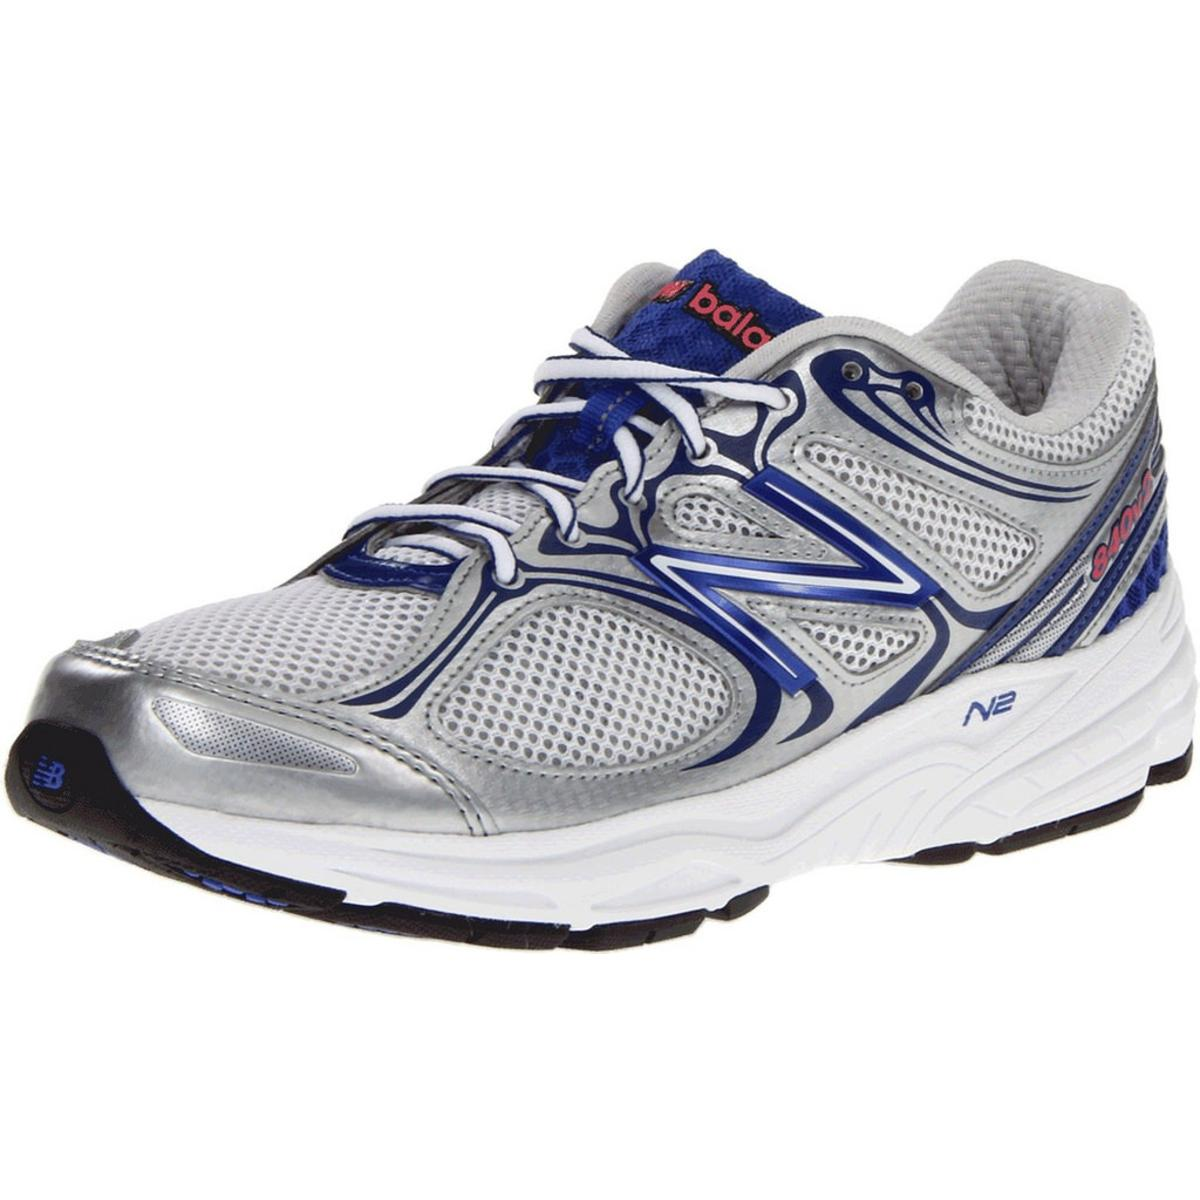 New Balance 840v2 Running Women's Shoes Size by New Balance